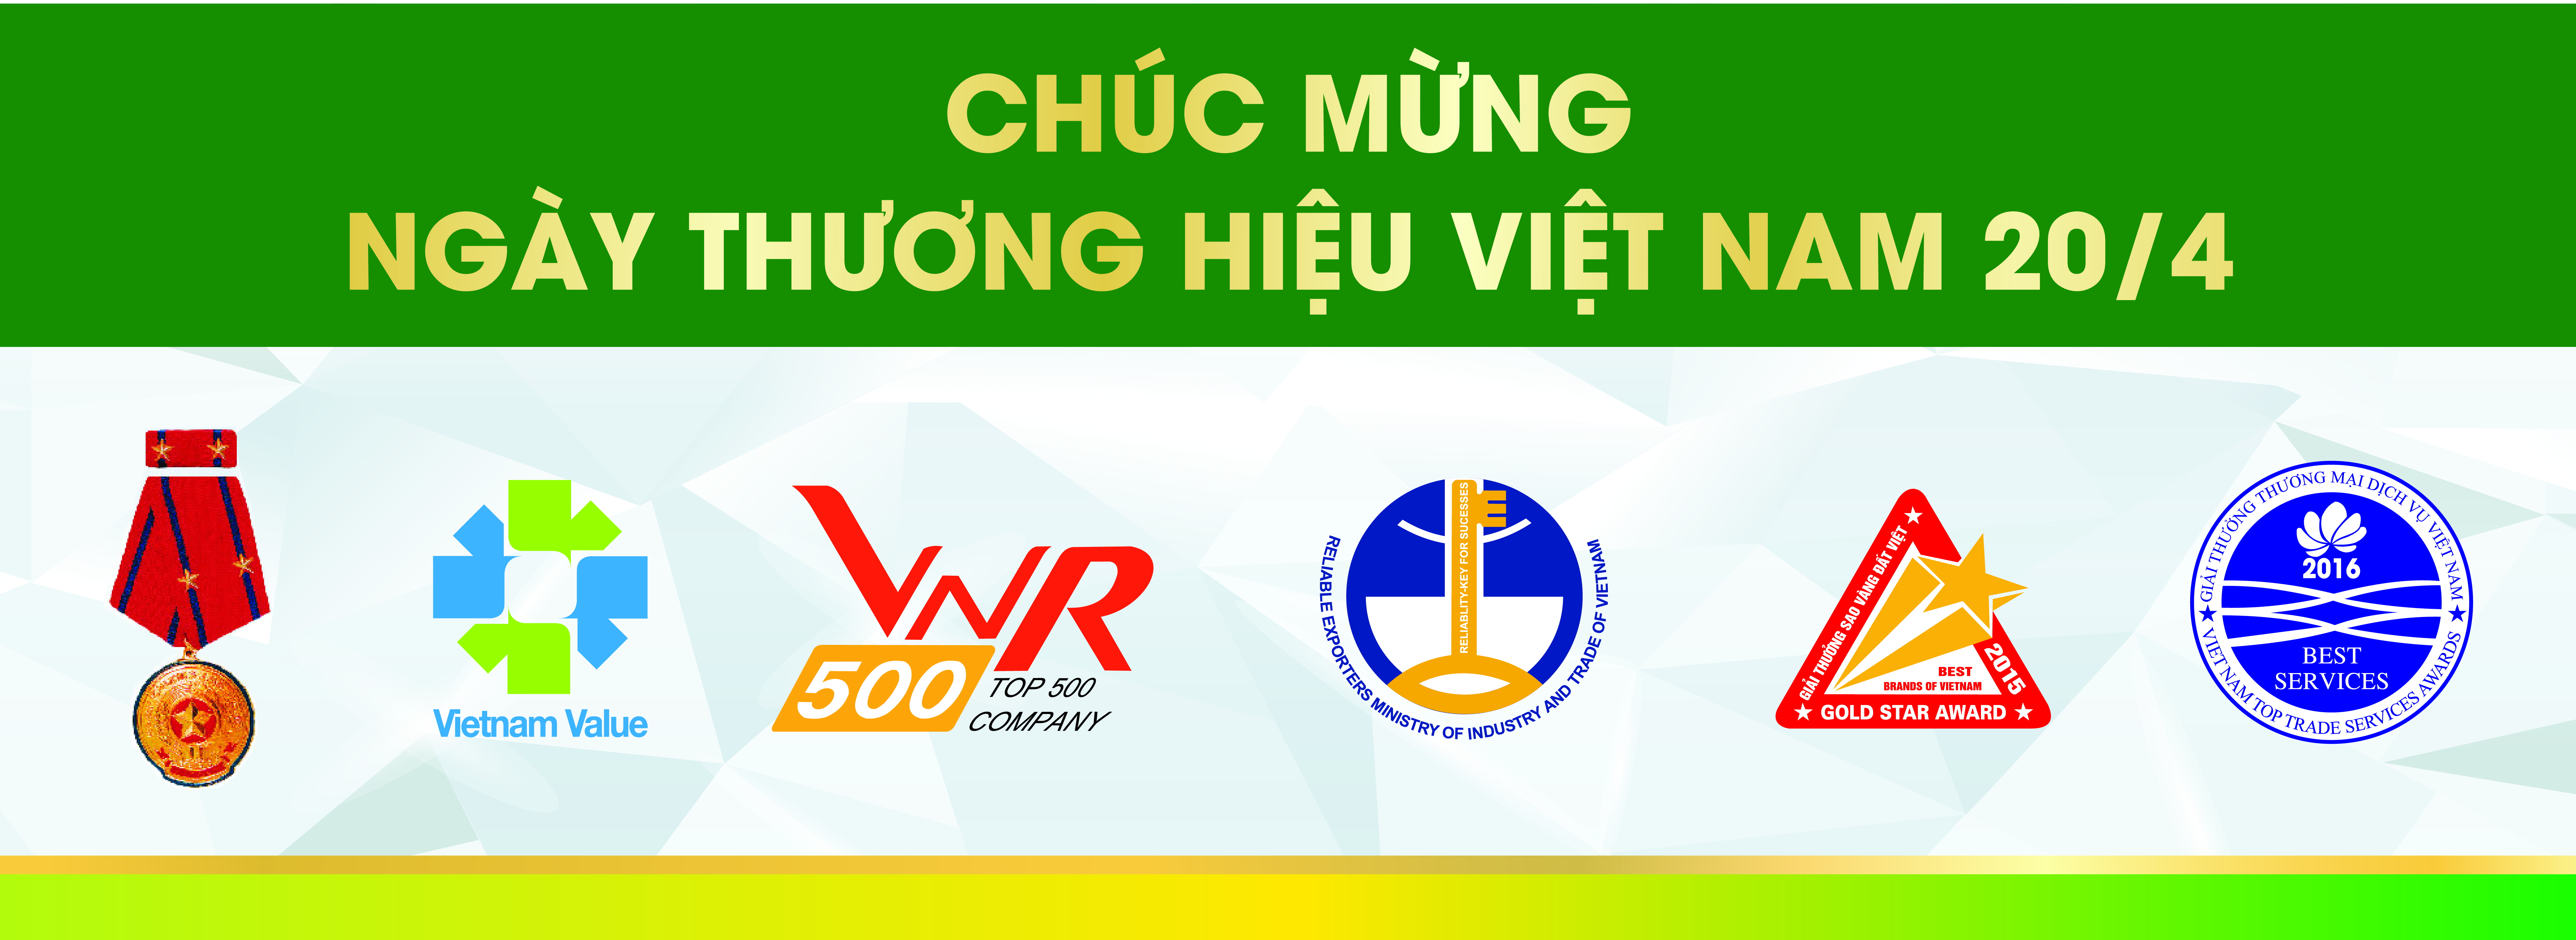 banner-web-chinh-2017